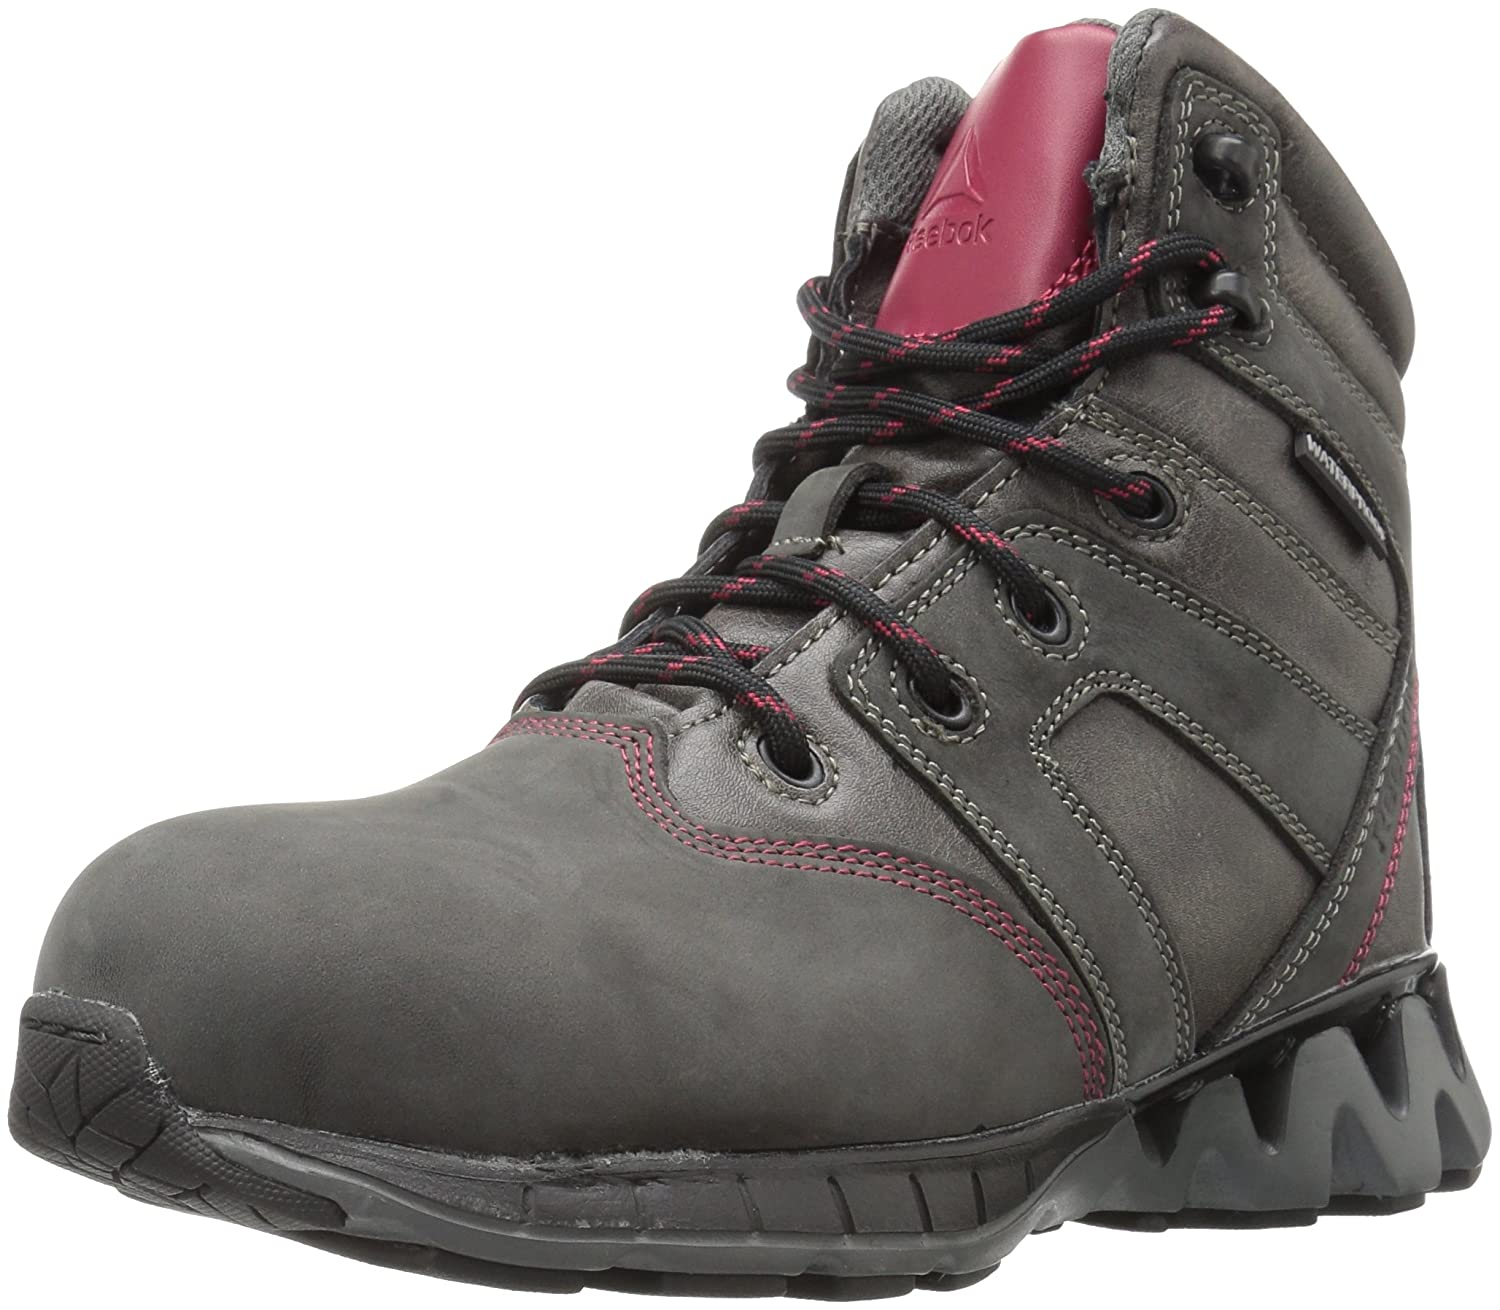 a97c2dc05f0dd5 Amazon.com  Reebok Zigkick Work RB703 Industrial and Construction Shoe   Shoes